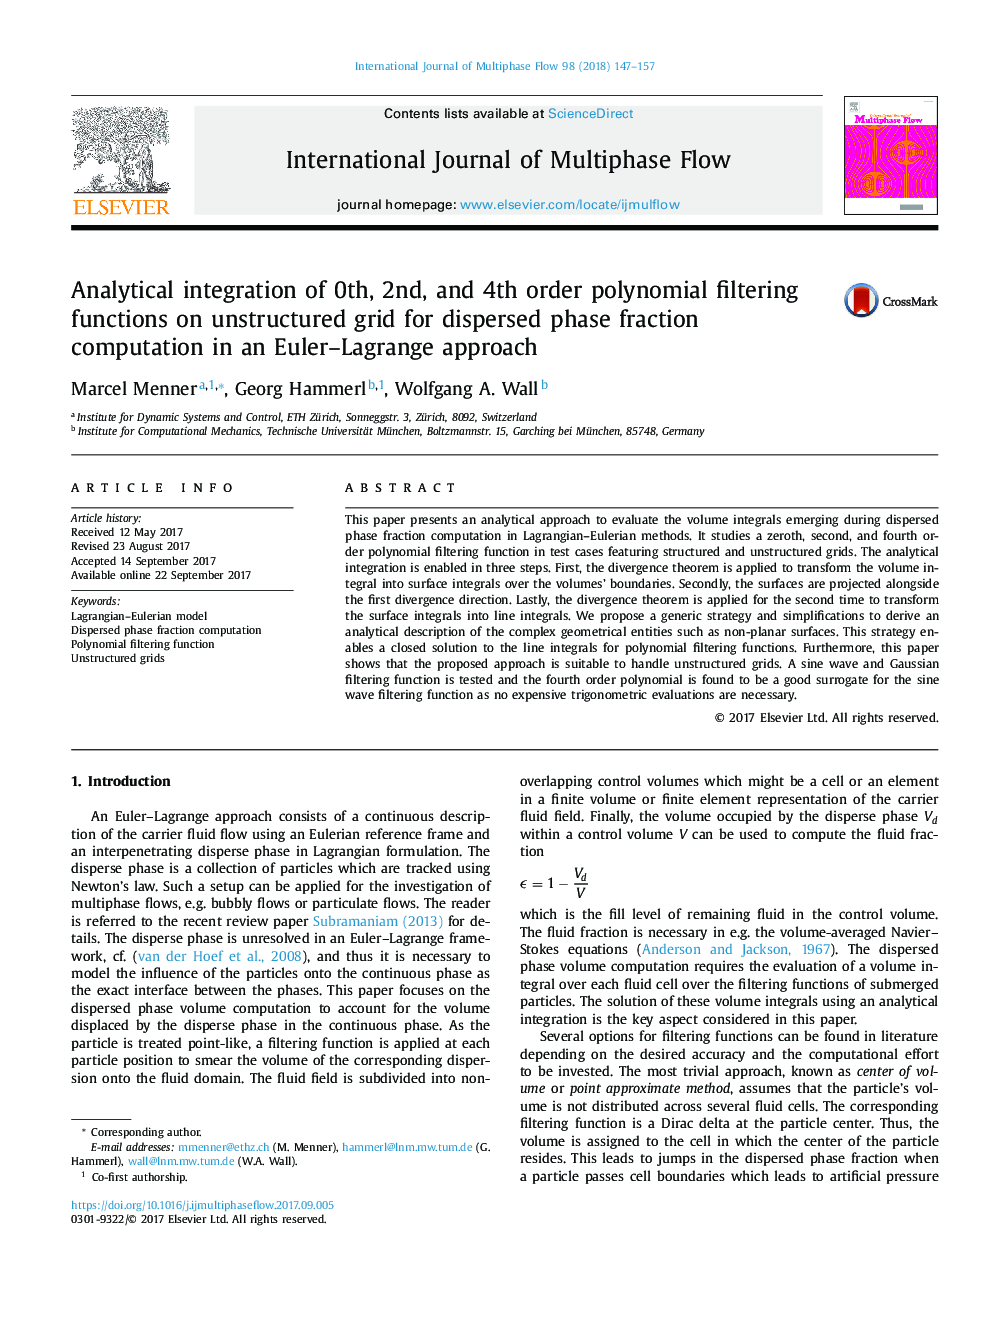 Analytical integration of 0th, 2nd, and 4th order polynomial filtering functions on unstructured grid for dispersed phase fraction computation in an Euler–Lagrange approach